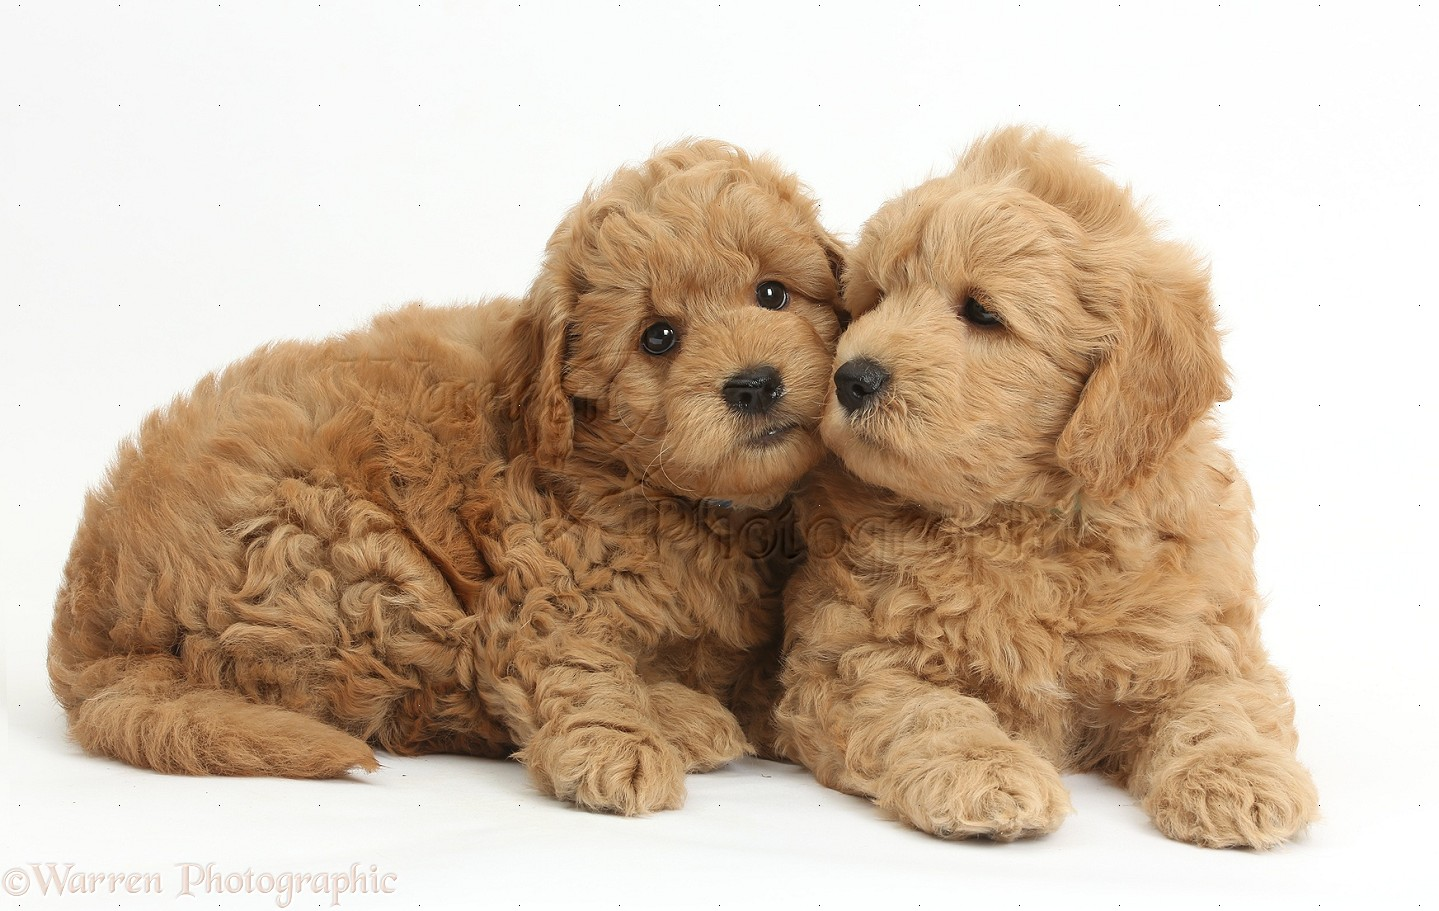 brown teddy bear puppies - 1439×751